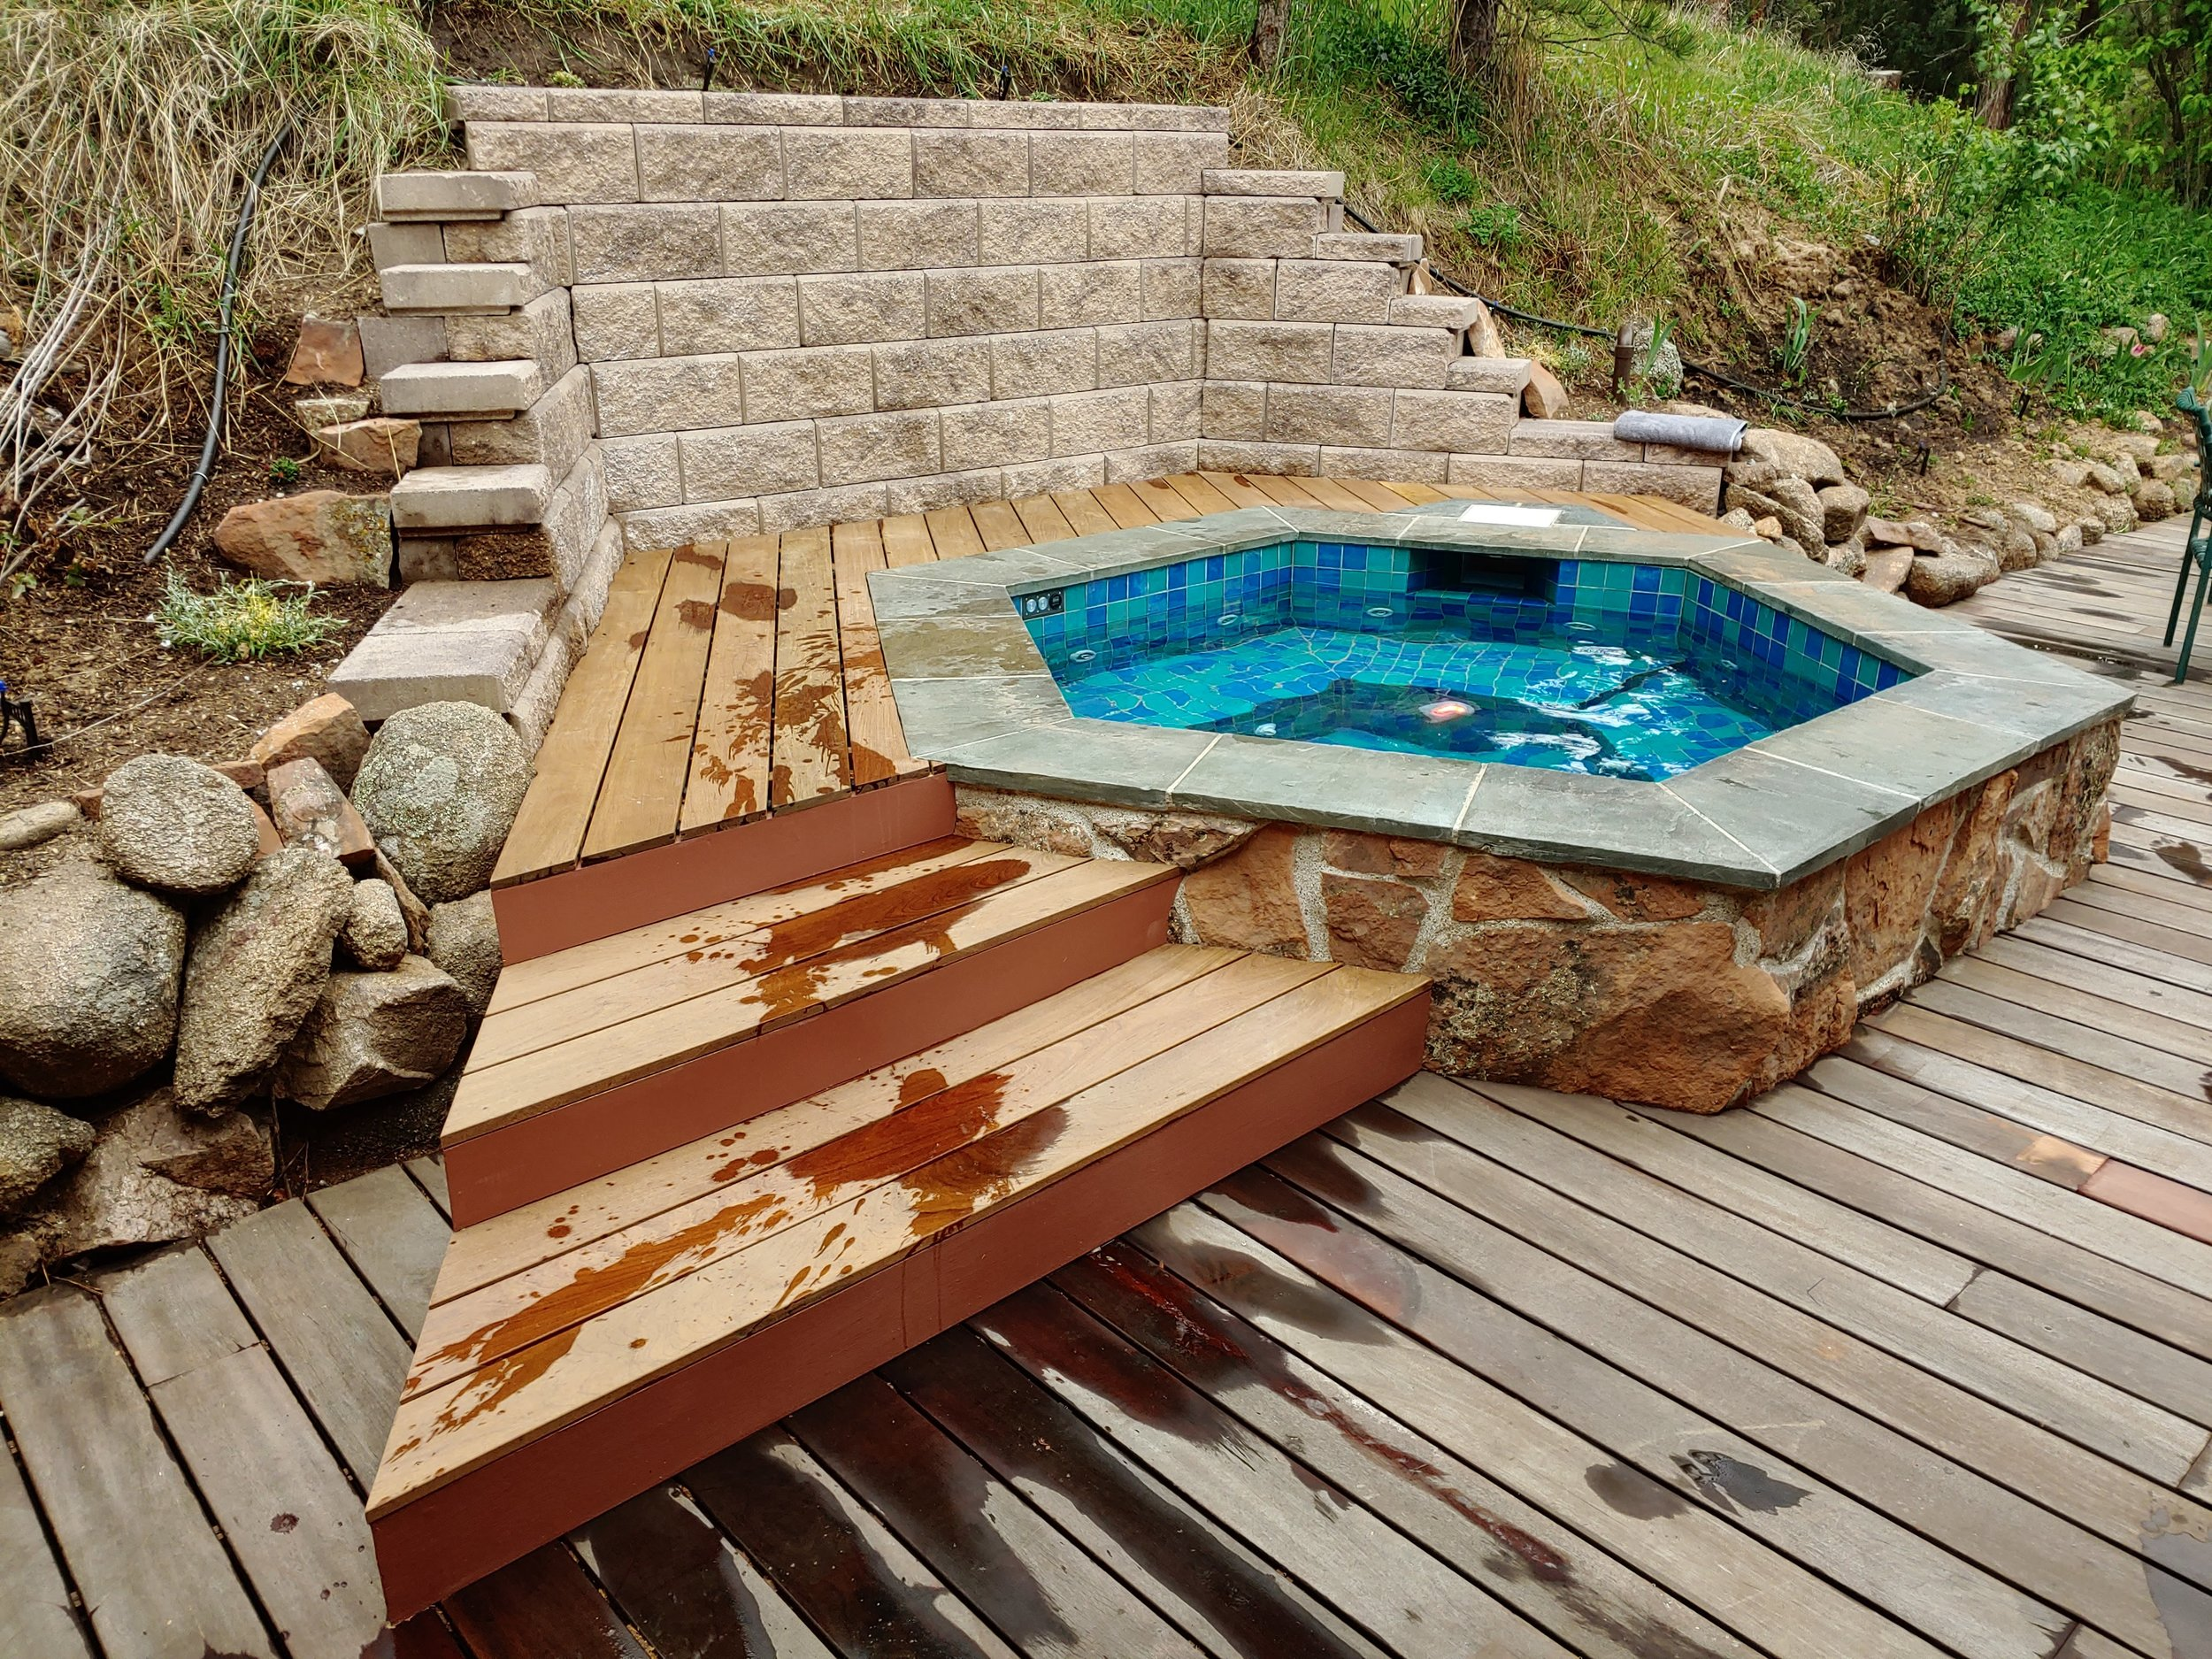 Hexagonal Hot Tub Never Stop Building Crafting Wood With Japanese Techniques